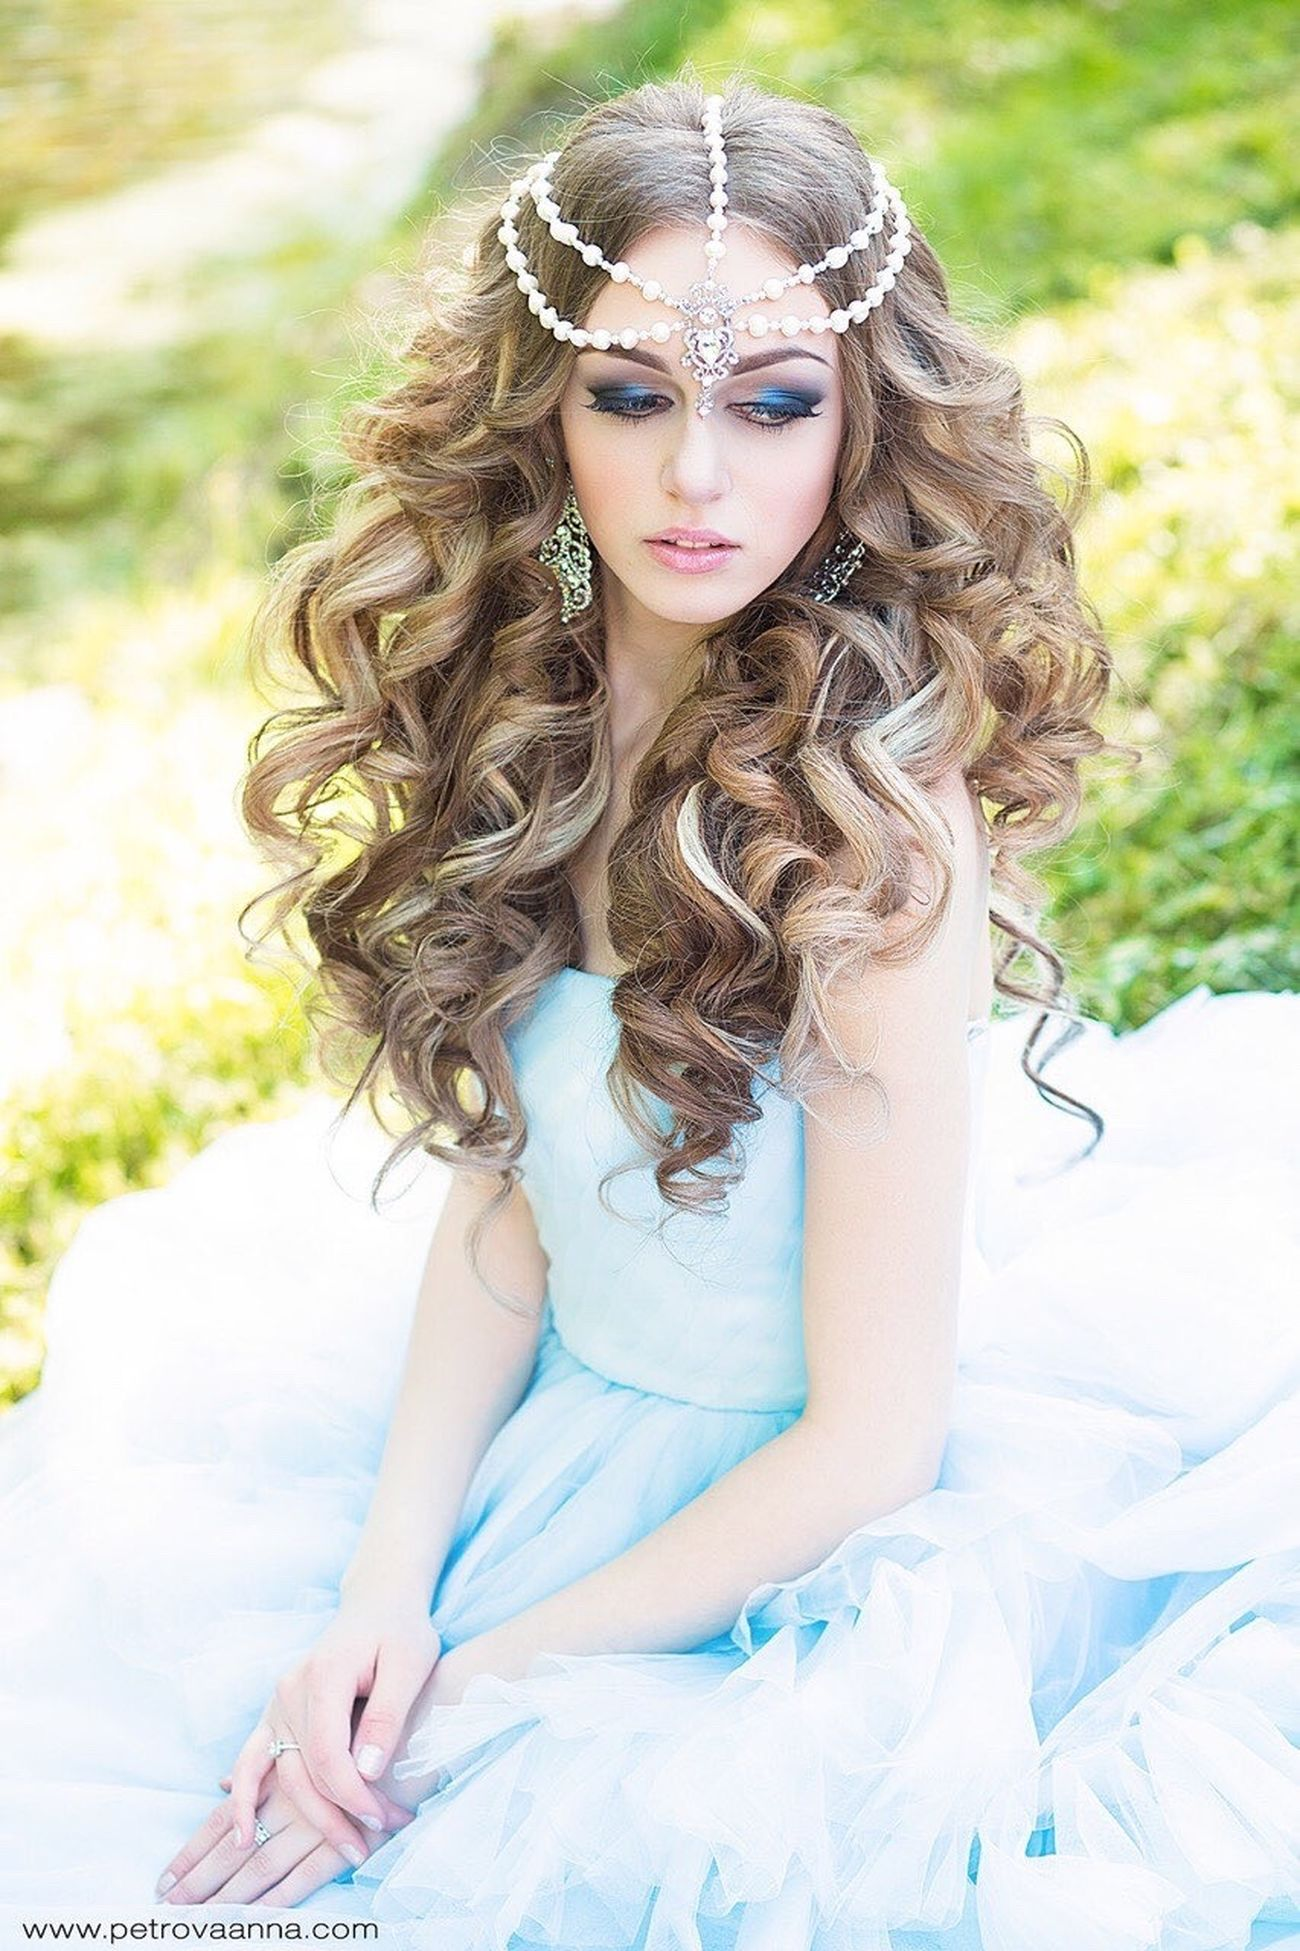 Novia2015 Pretty Girl Weddinghair Fashion Hair Wedding Bouquet Blondehair Wedding Dress Happy Wedding Wedding Photos Blond Hair